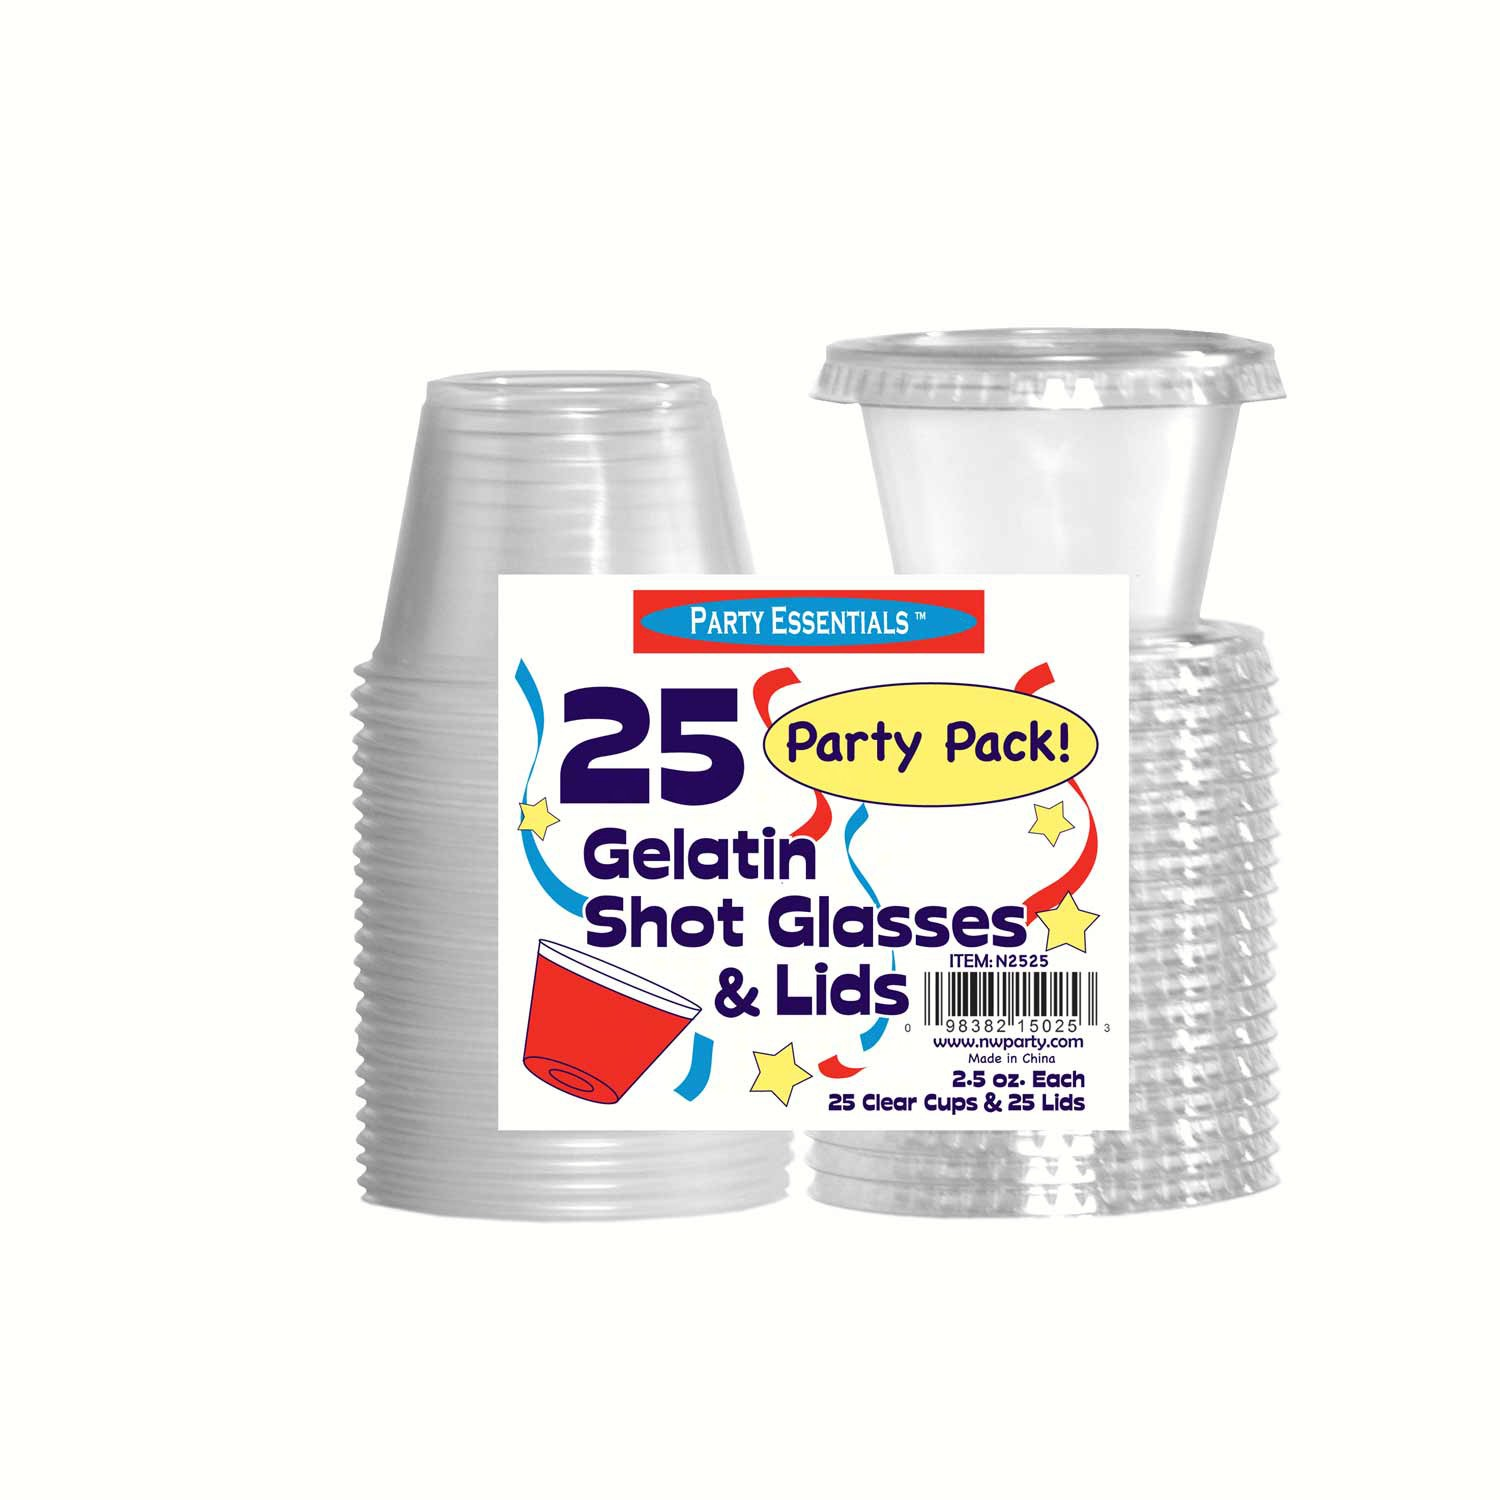 2.5 oz Shot Glasses & Lids. Clear 25 ct